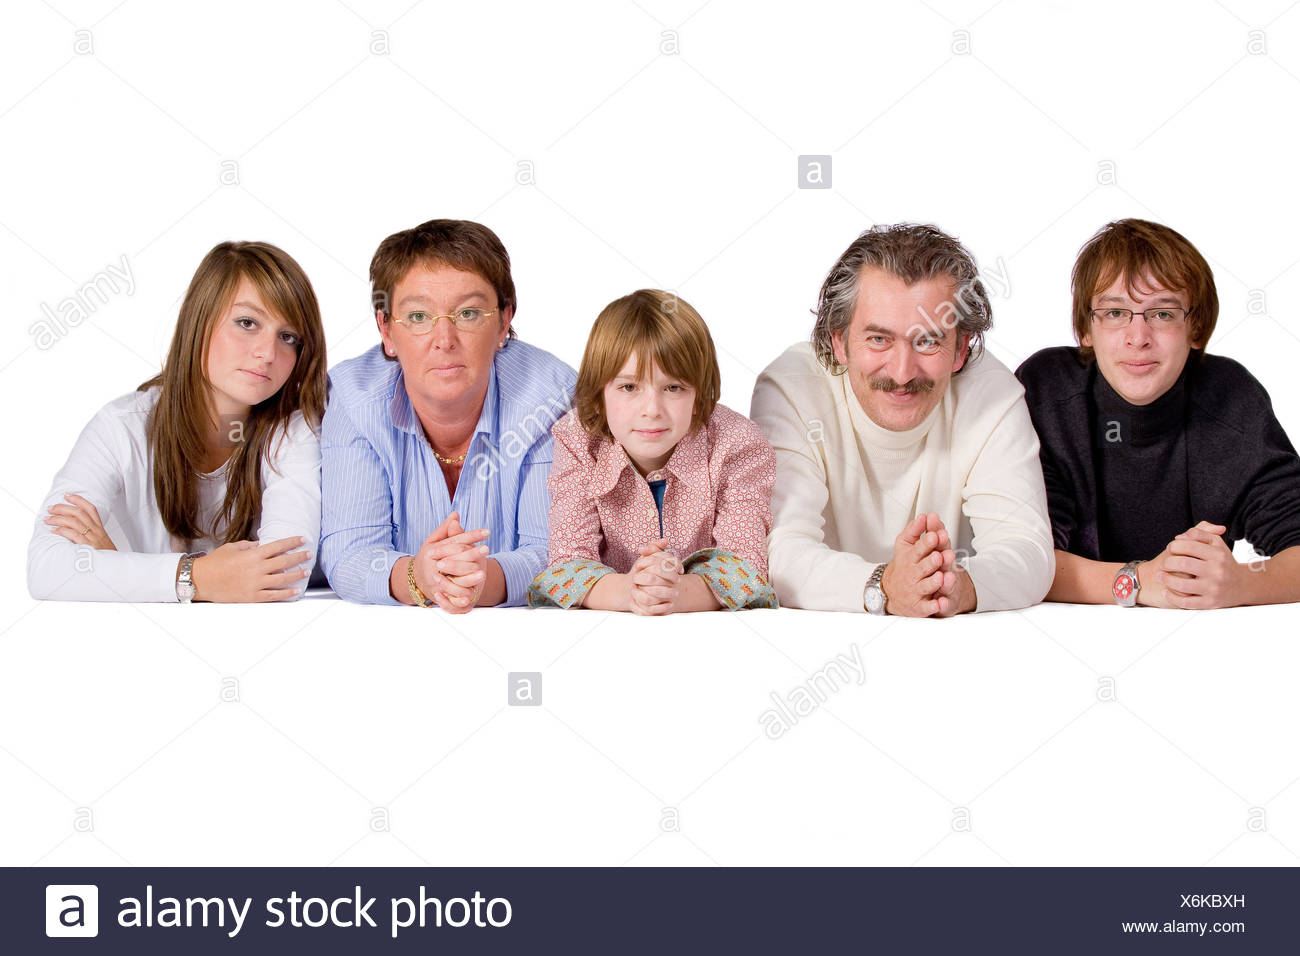 isolated delighted unambitious - Stock Image